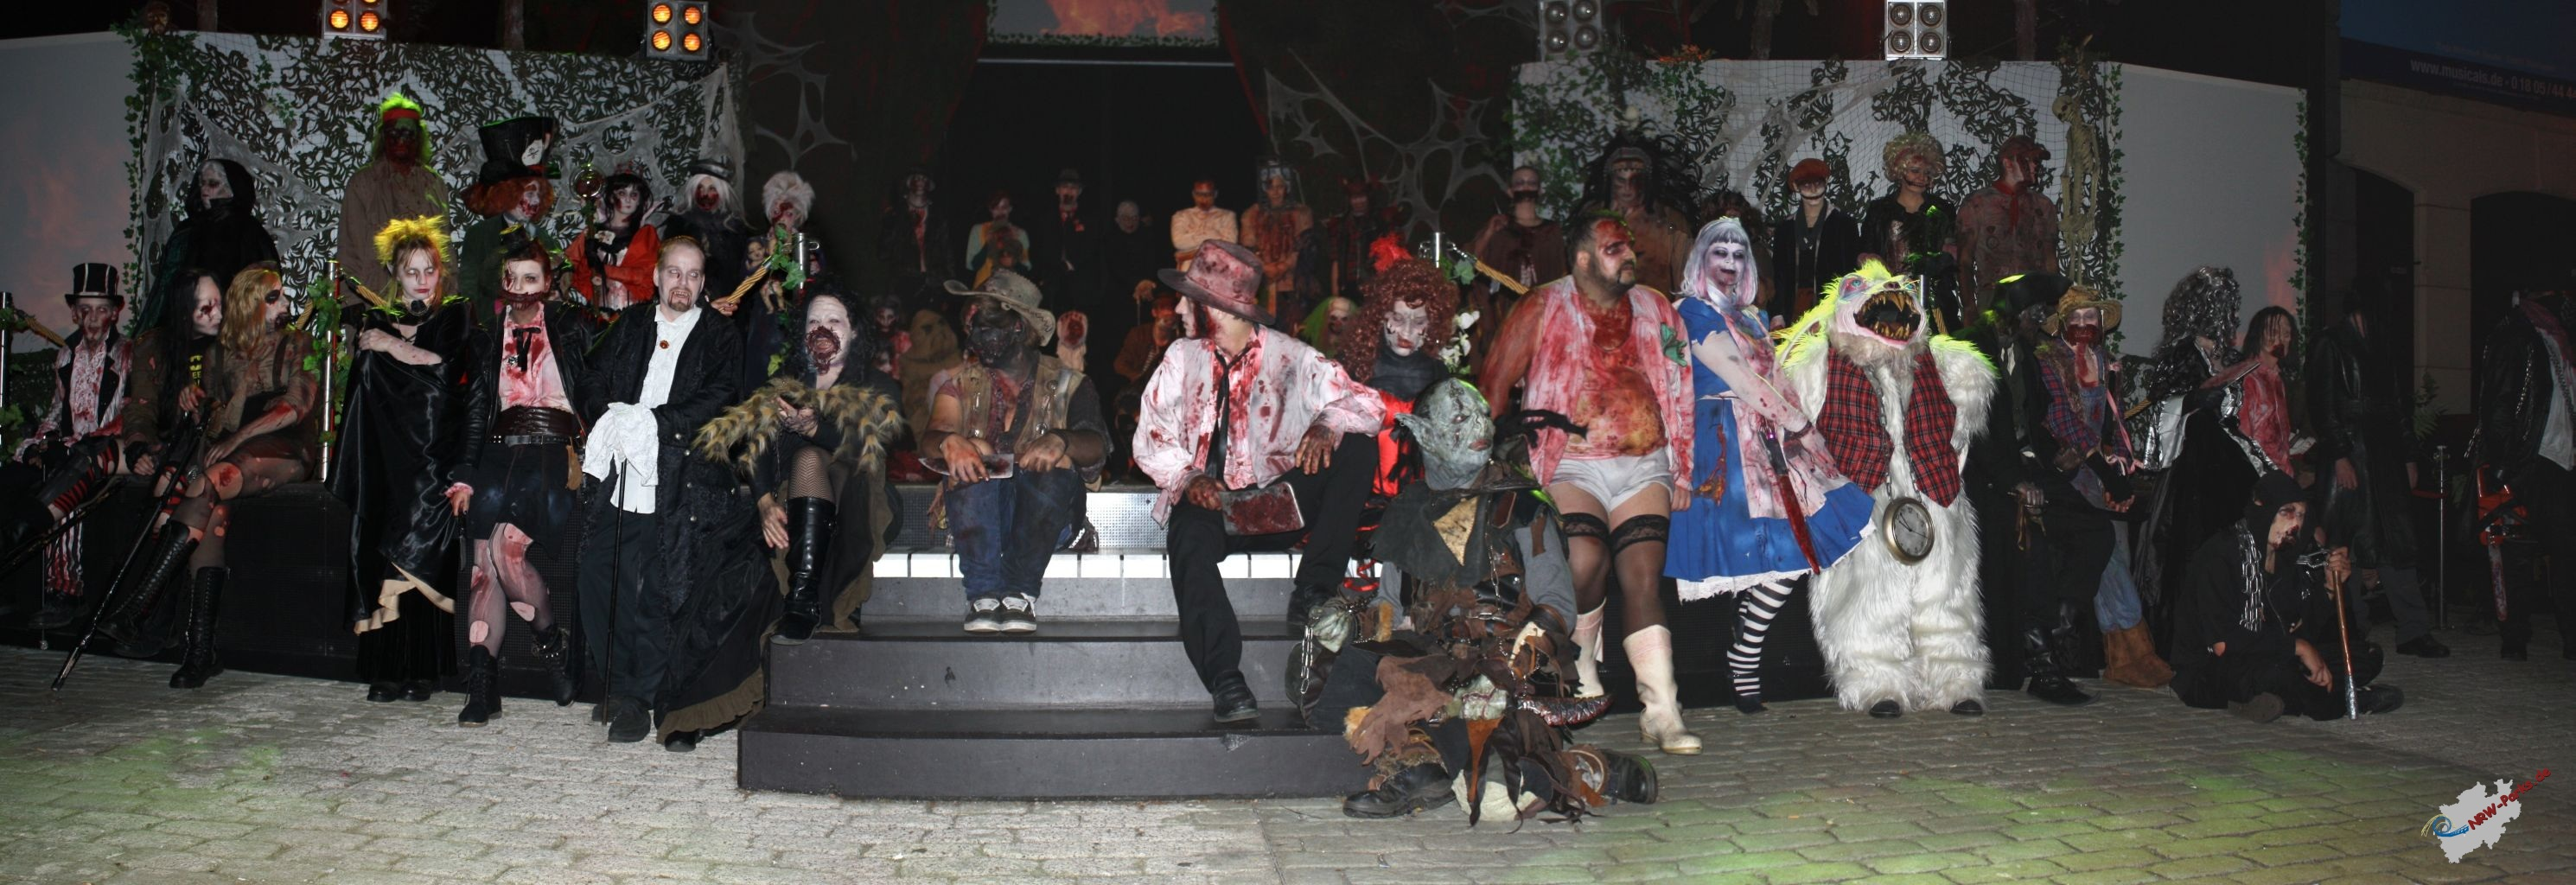 Gruppenfoto der Monster vom Halloween Horror Fest